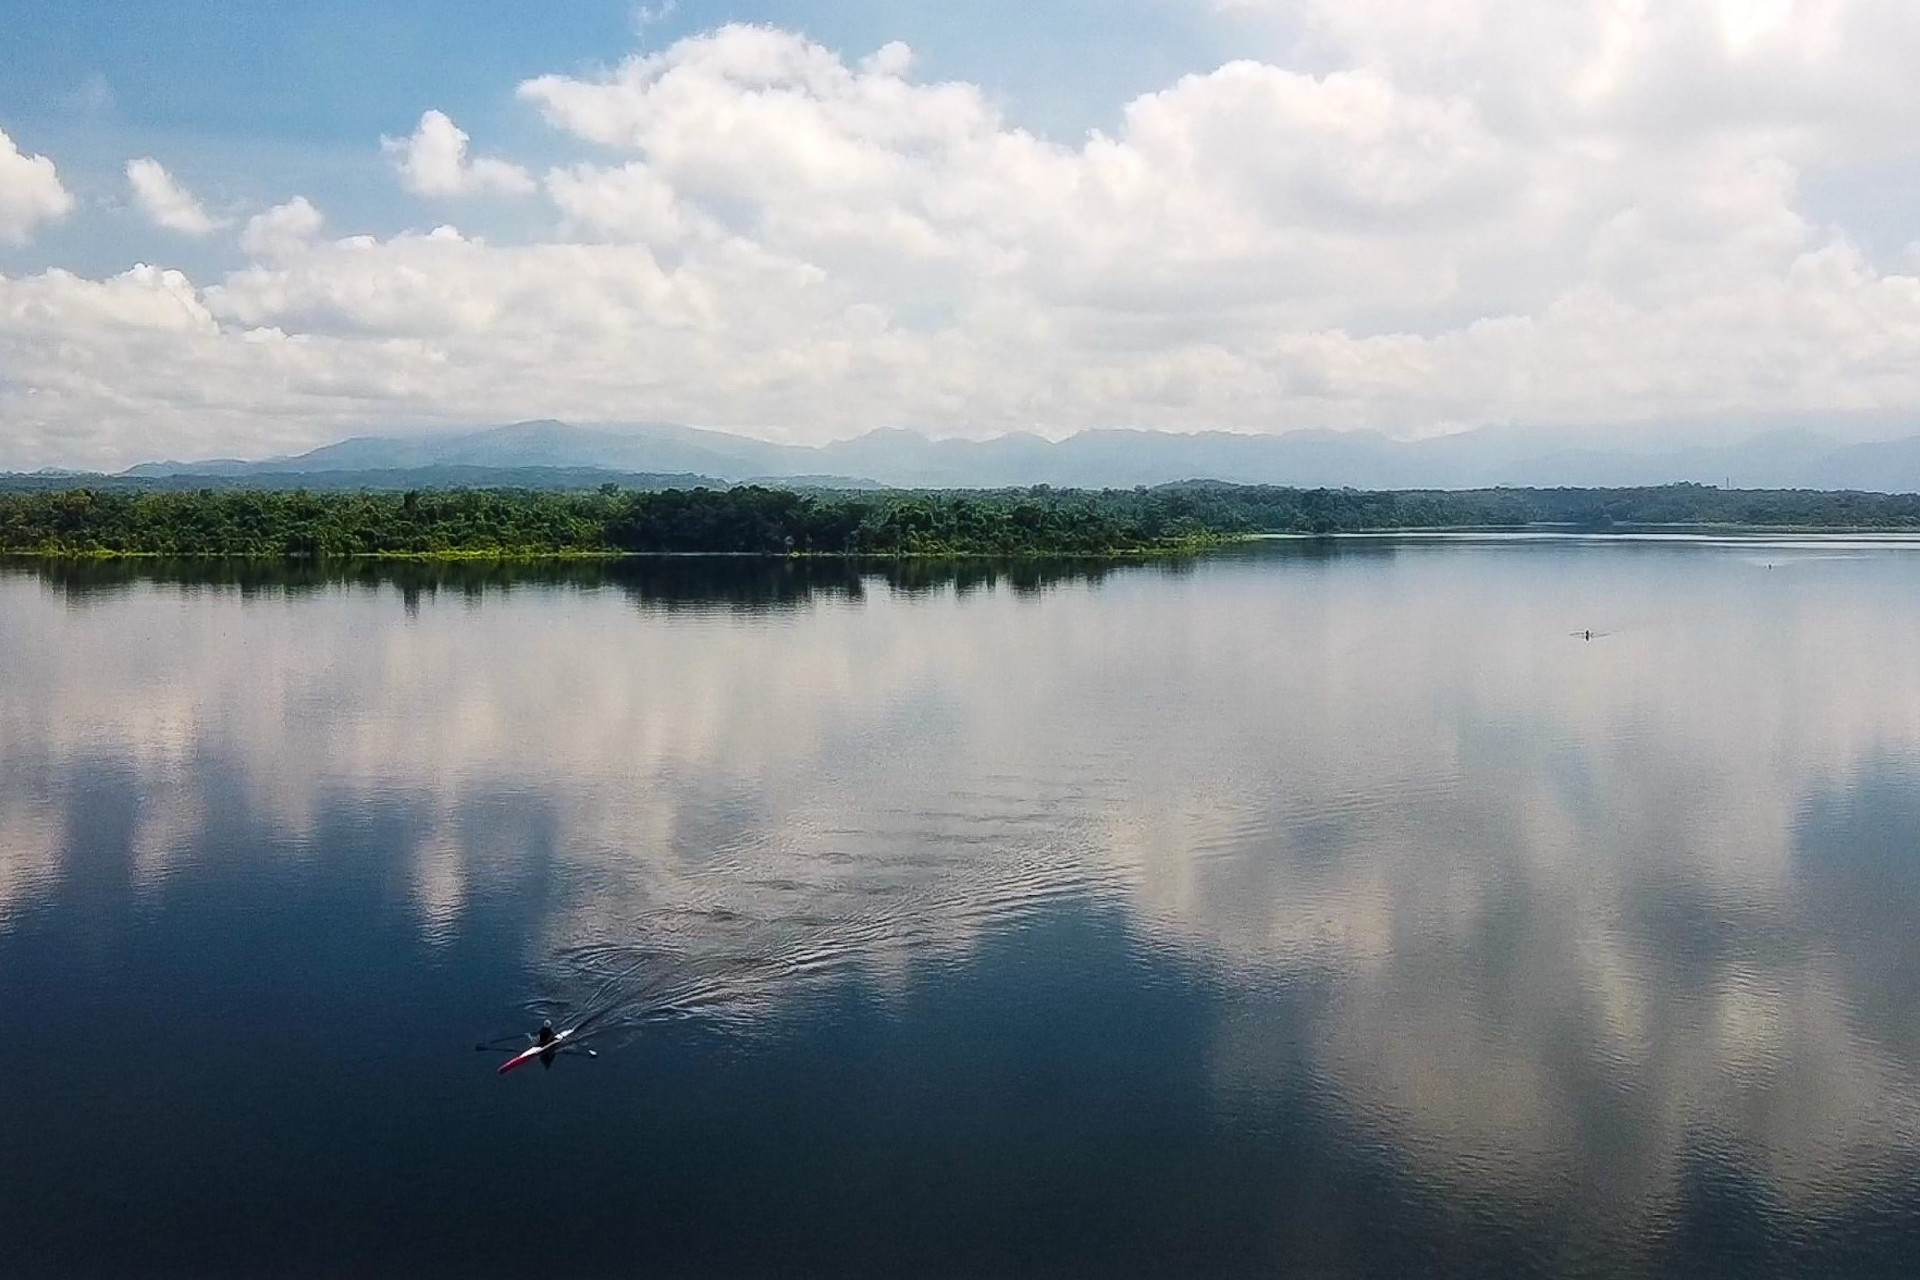 Philippine rowing is finally on the come up, thanks to a passionate community who are steering the sport in the right direction.